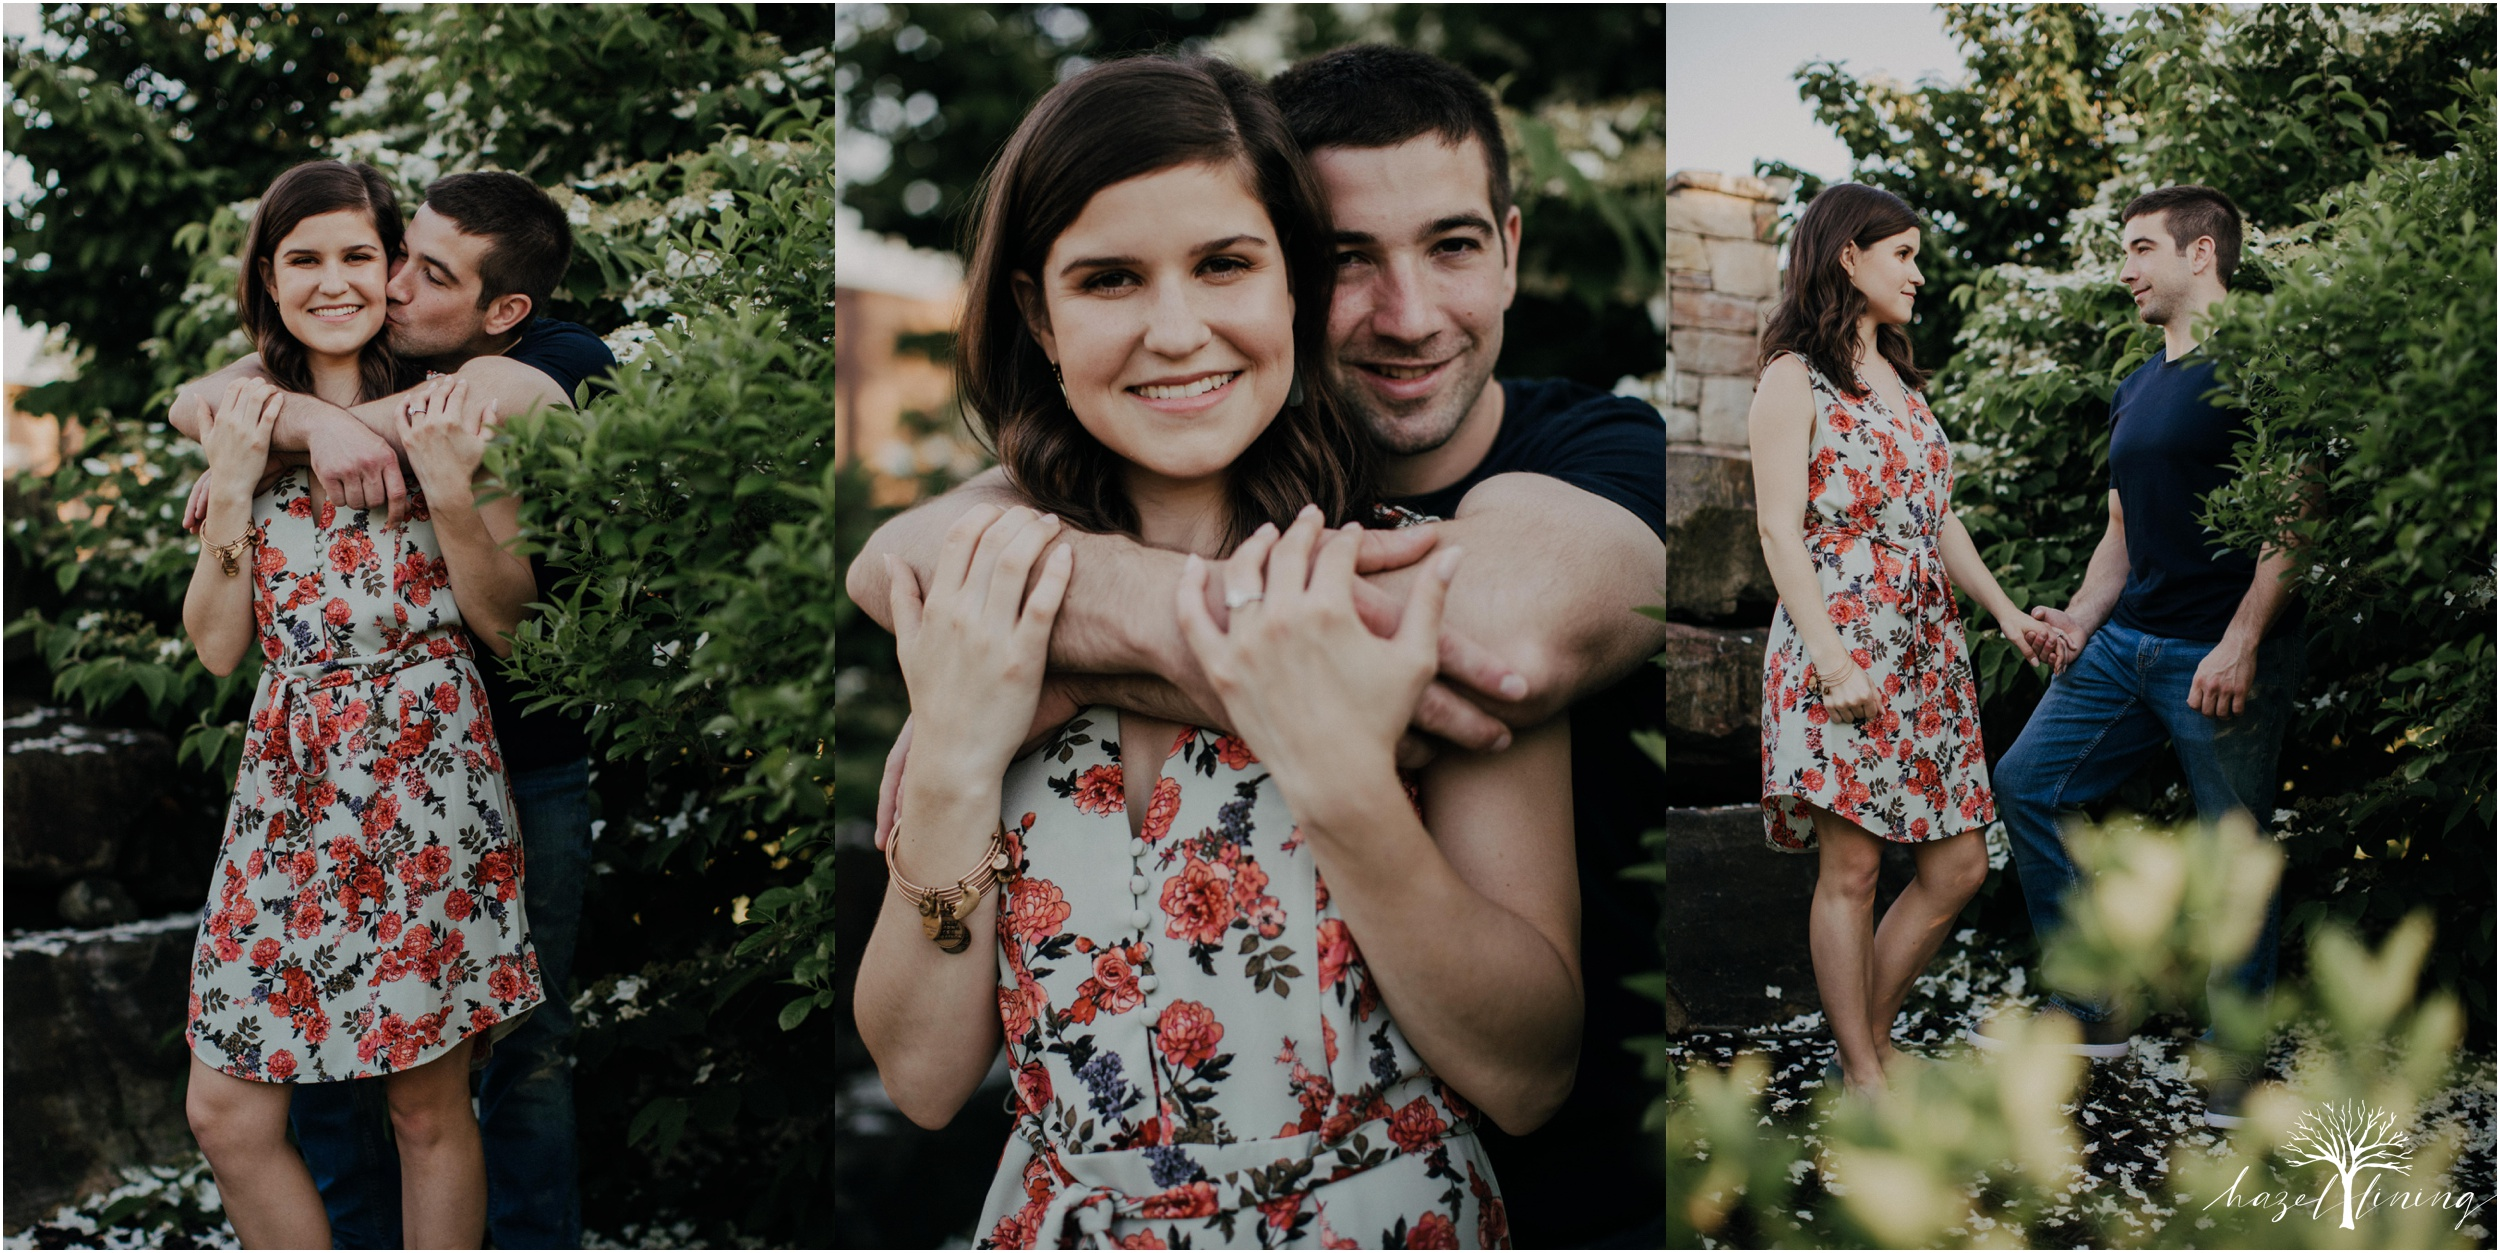 ellyn-jack-kutztown-university-of-pennsylvania-engagement-session-hazel-lining-photography-destination-elopement-wedding-engagement-photography_0254.jpg